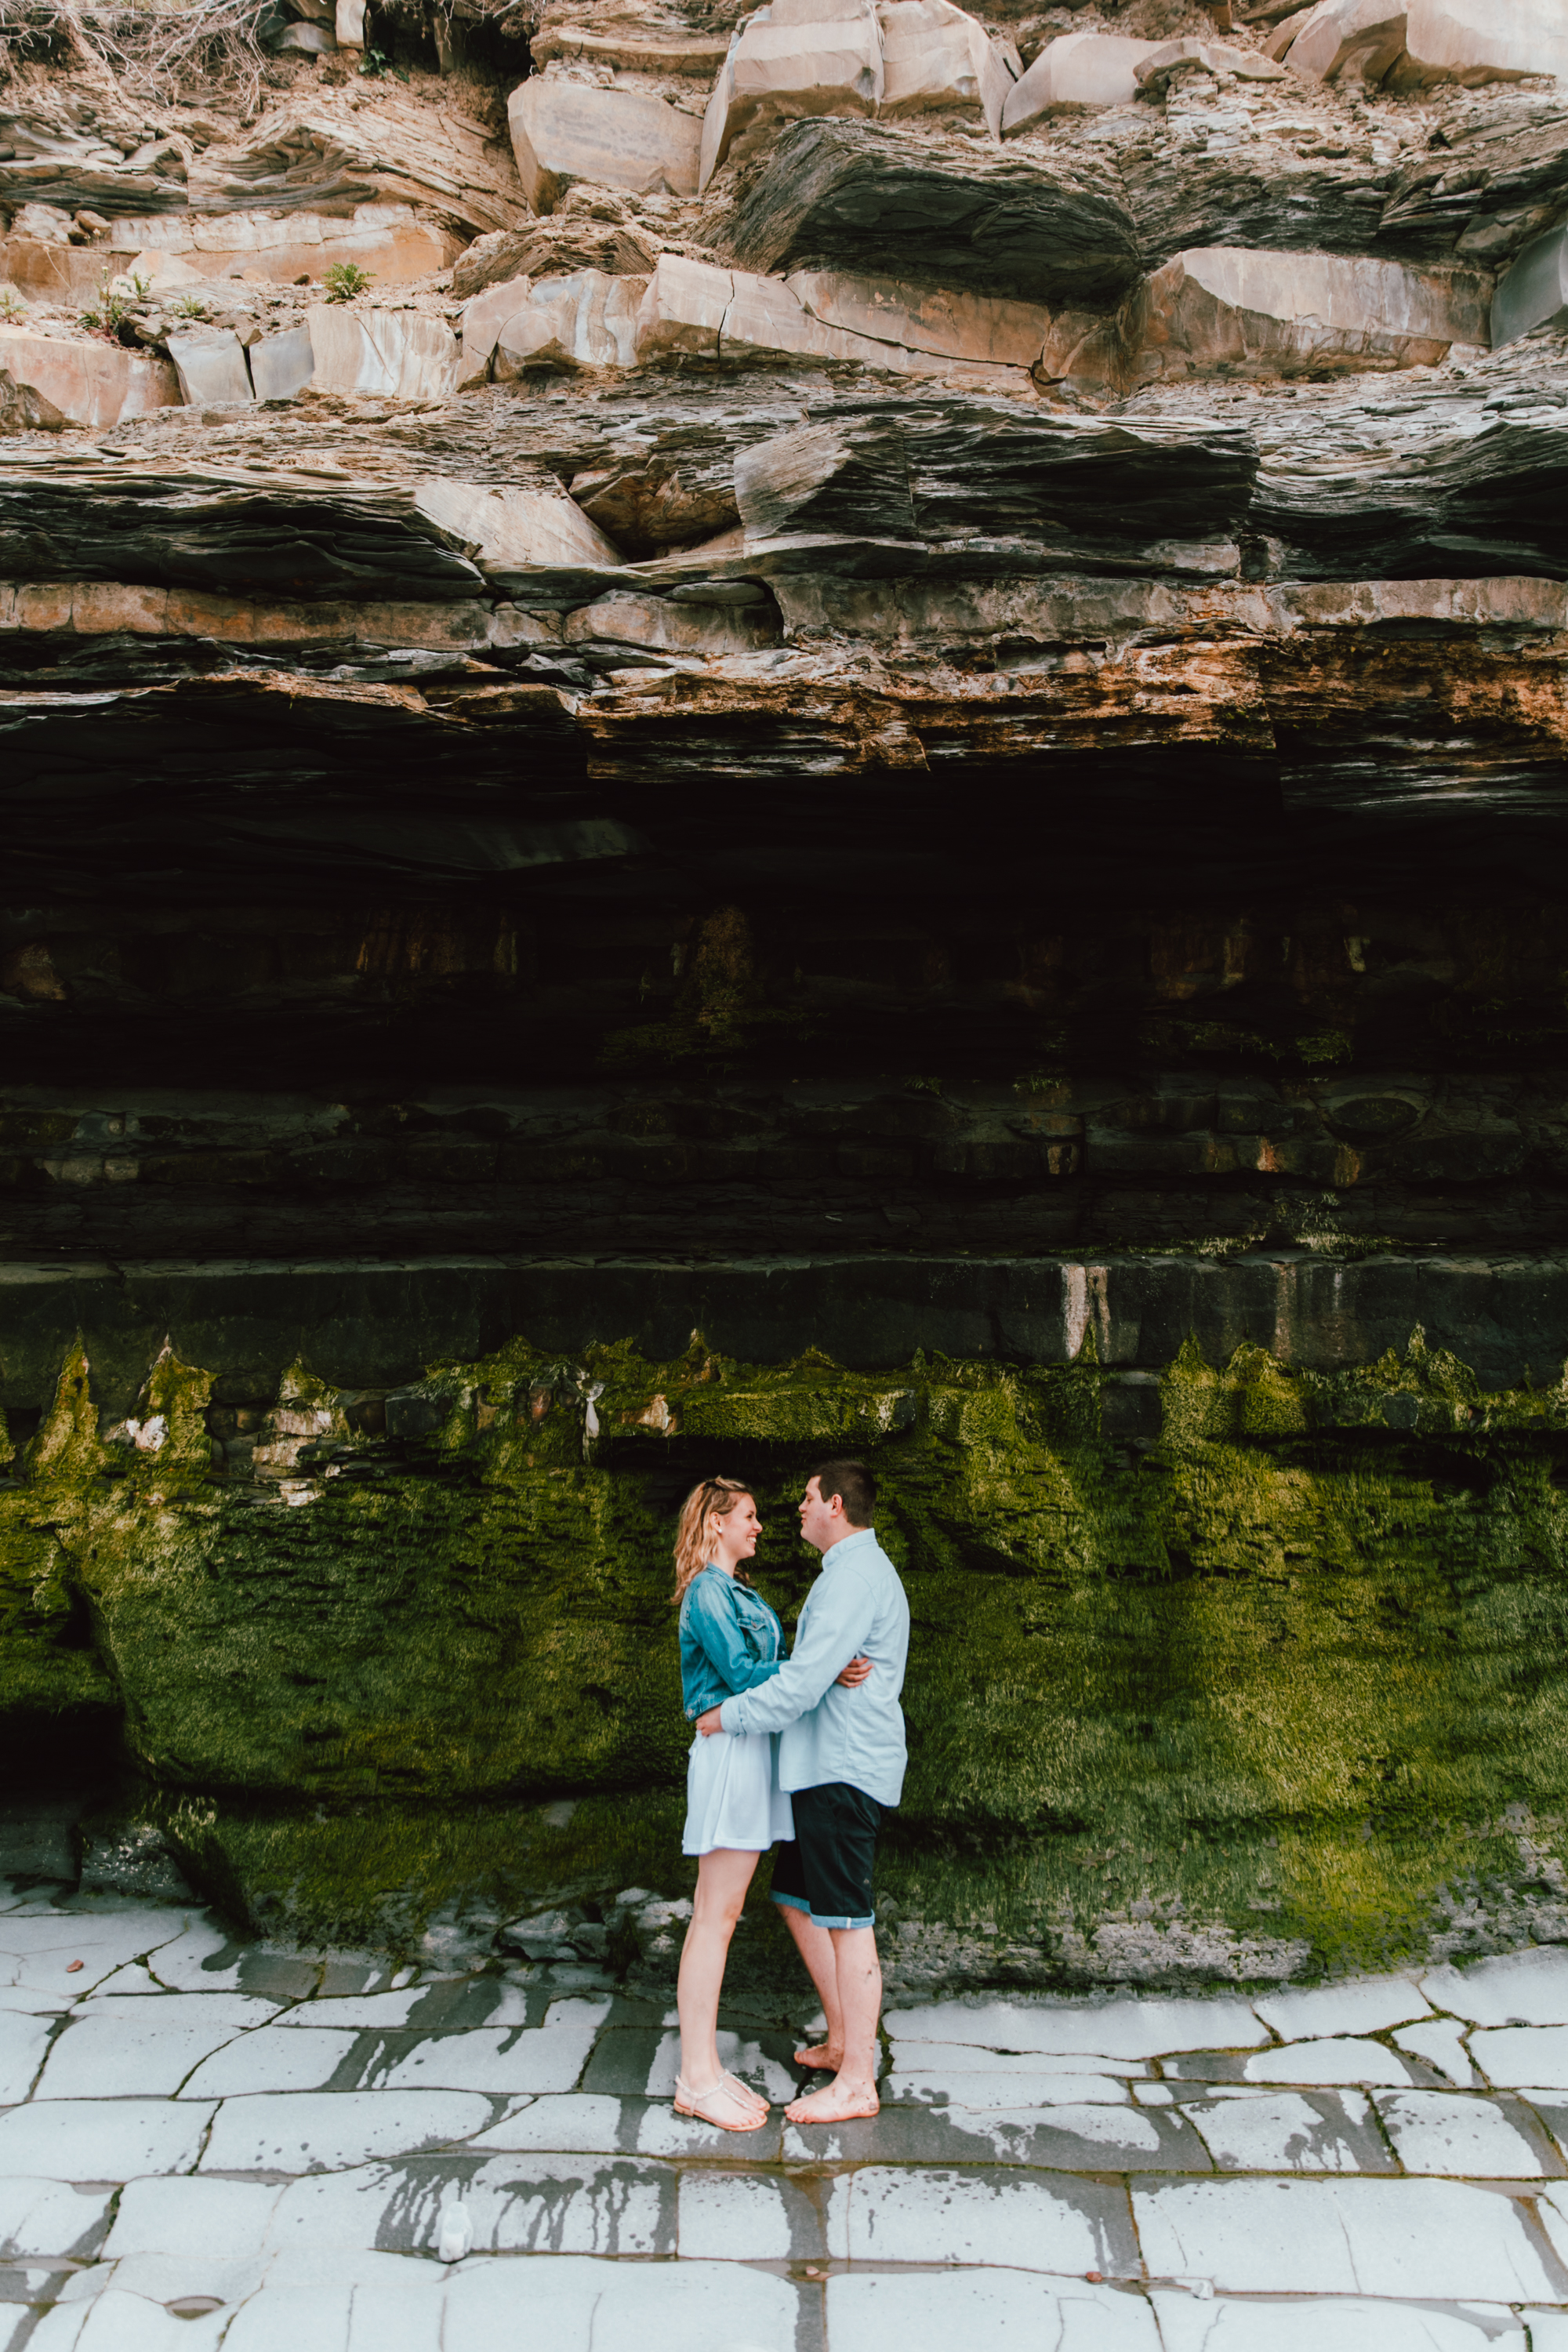 Sean & Abi - Engagement (79 of 105).jpg